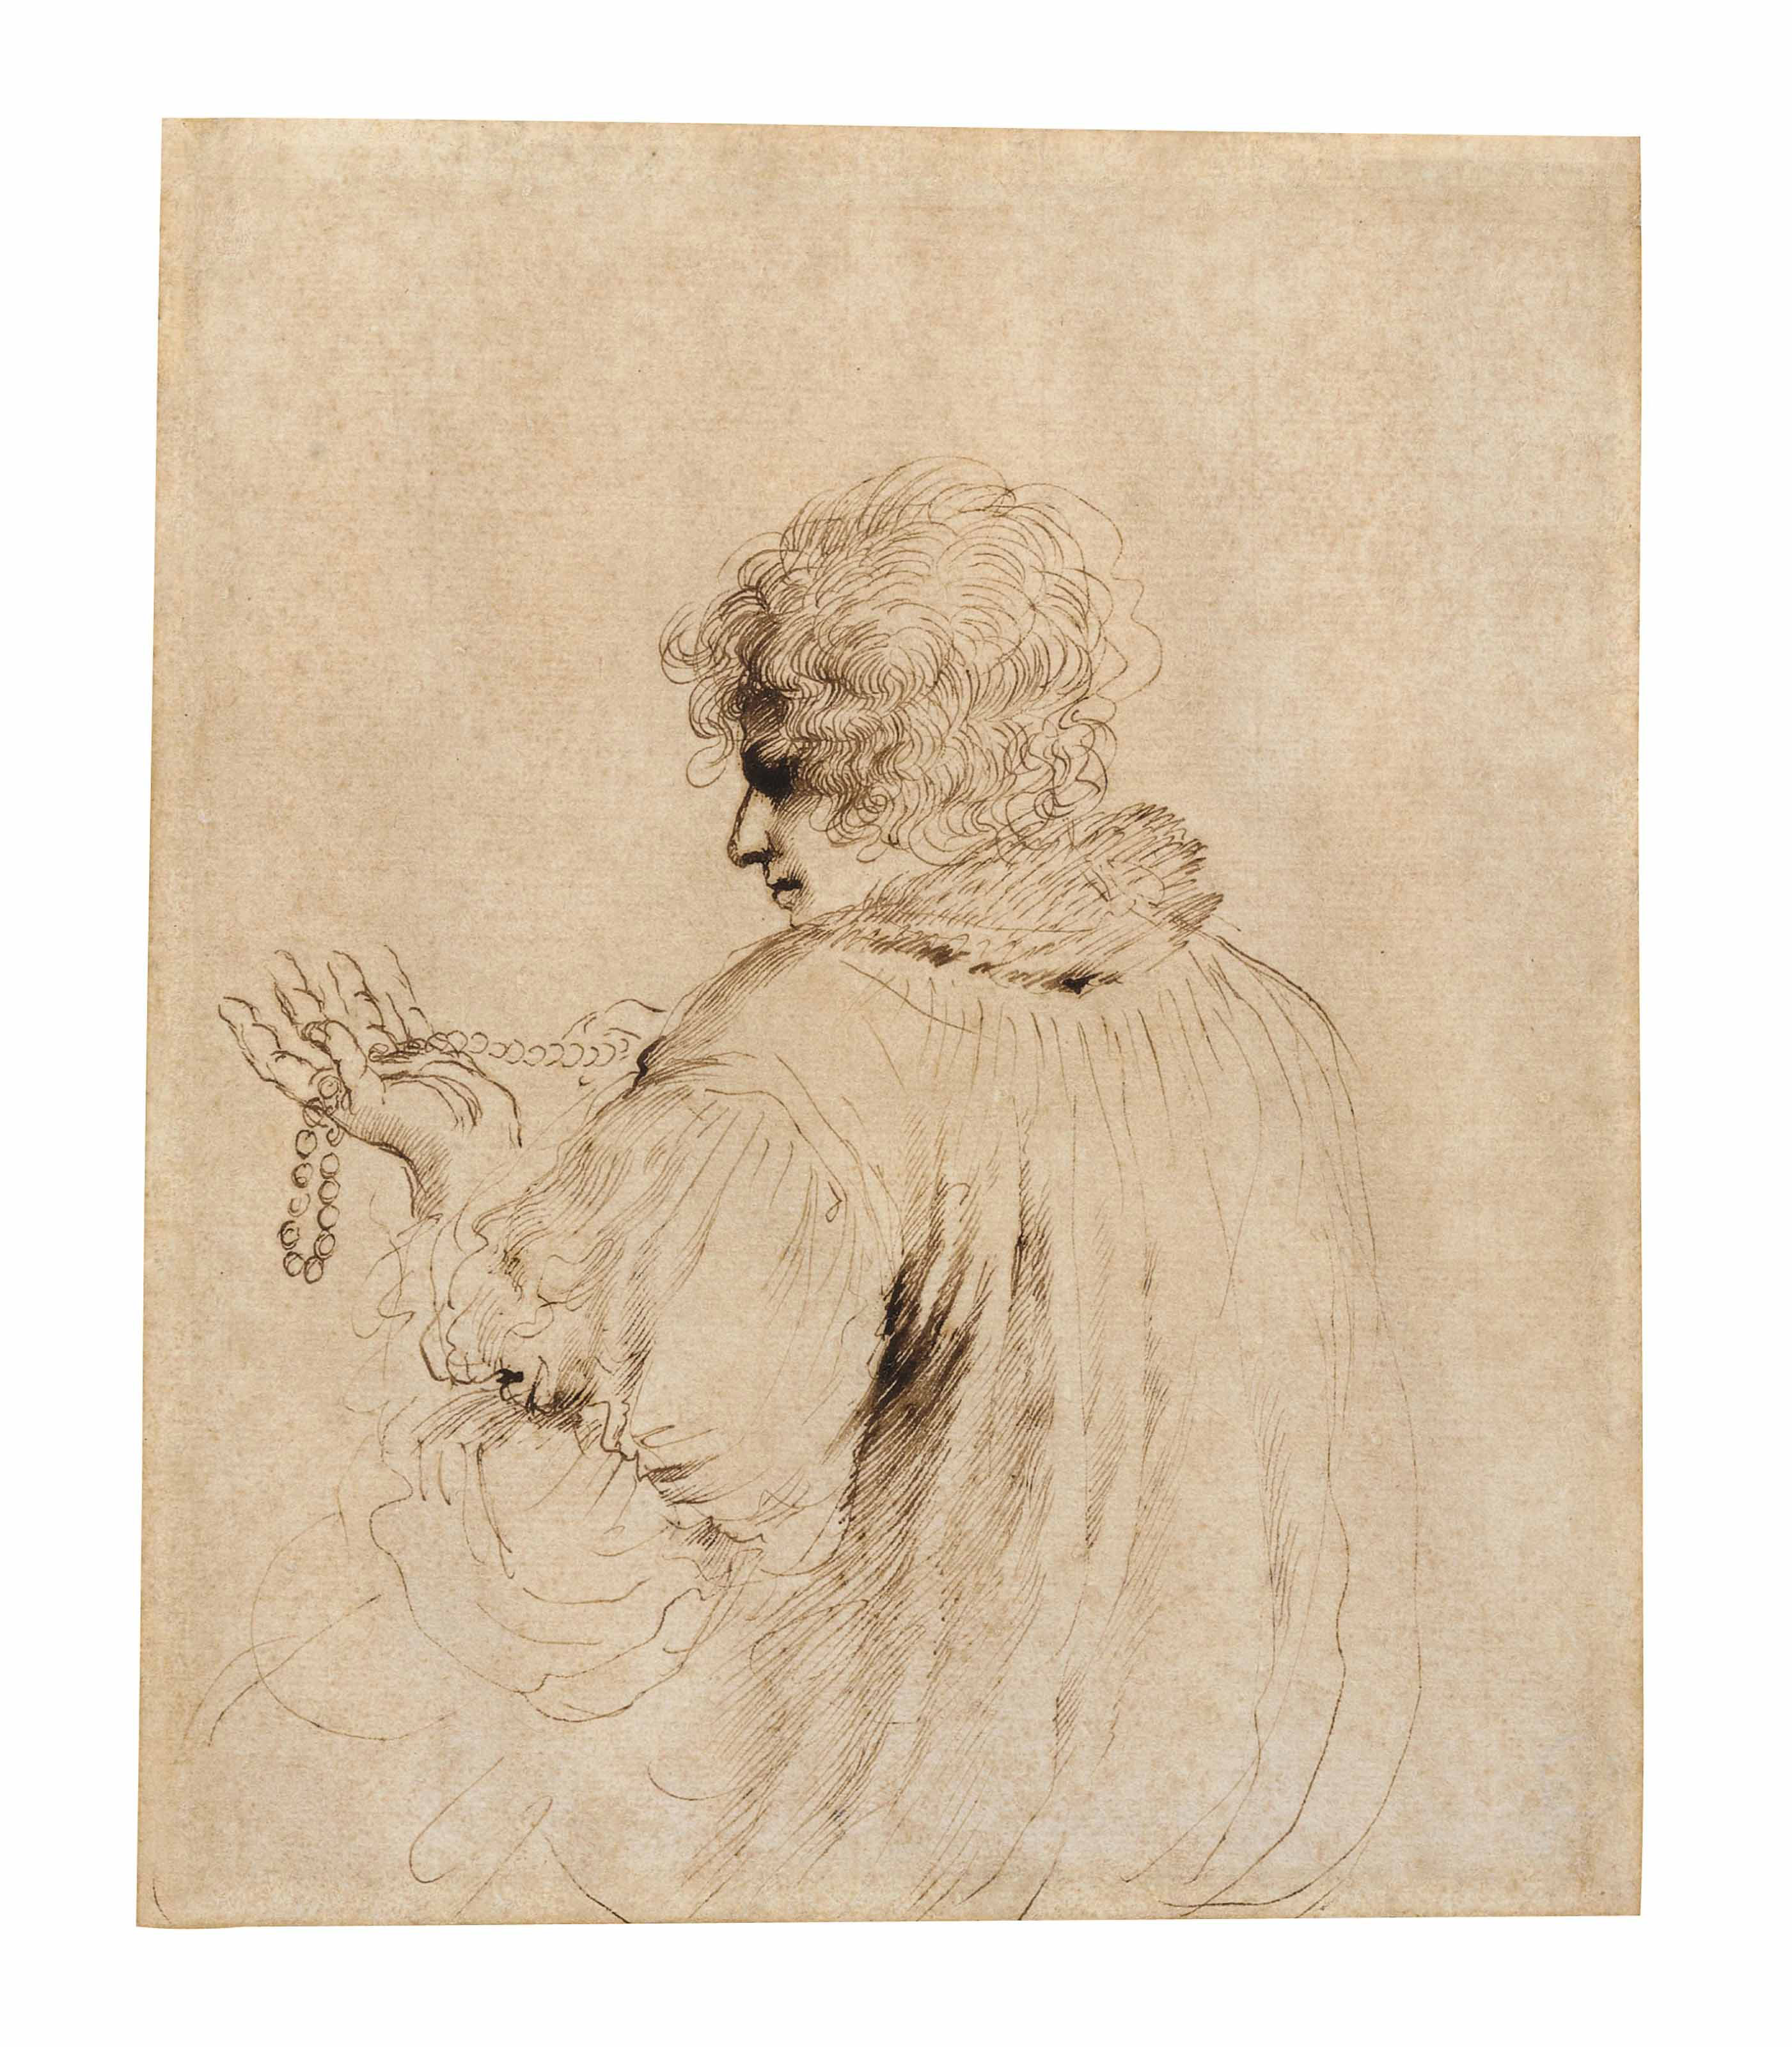 Giovanni Francesco Barbieri, i